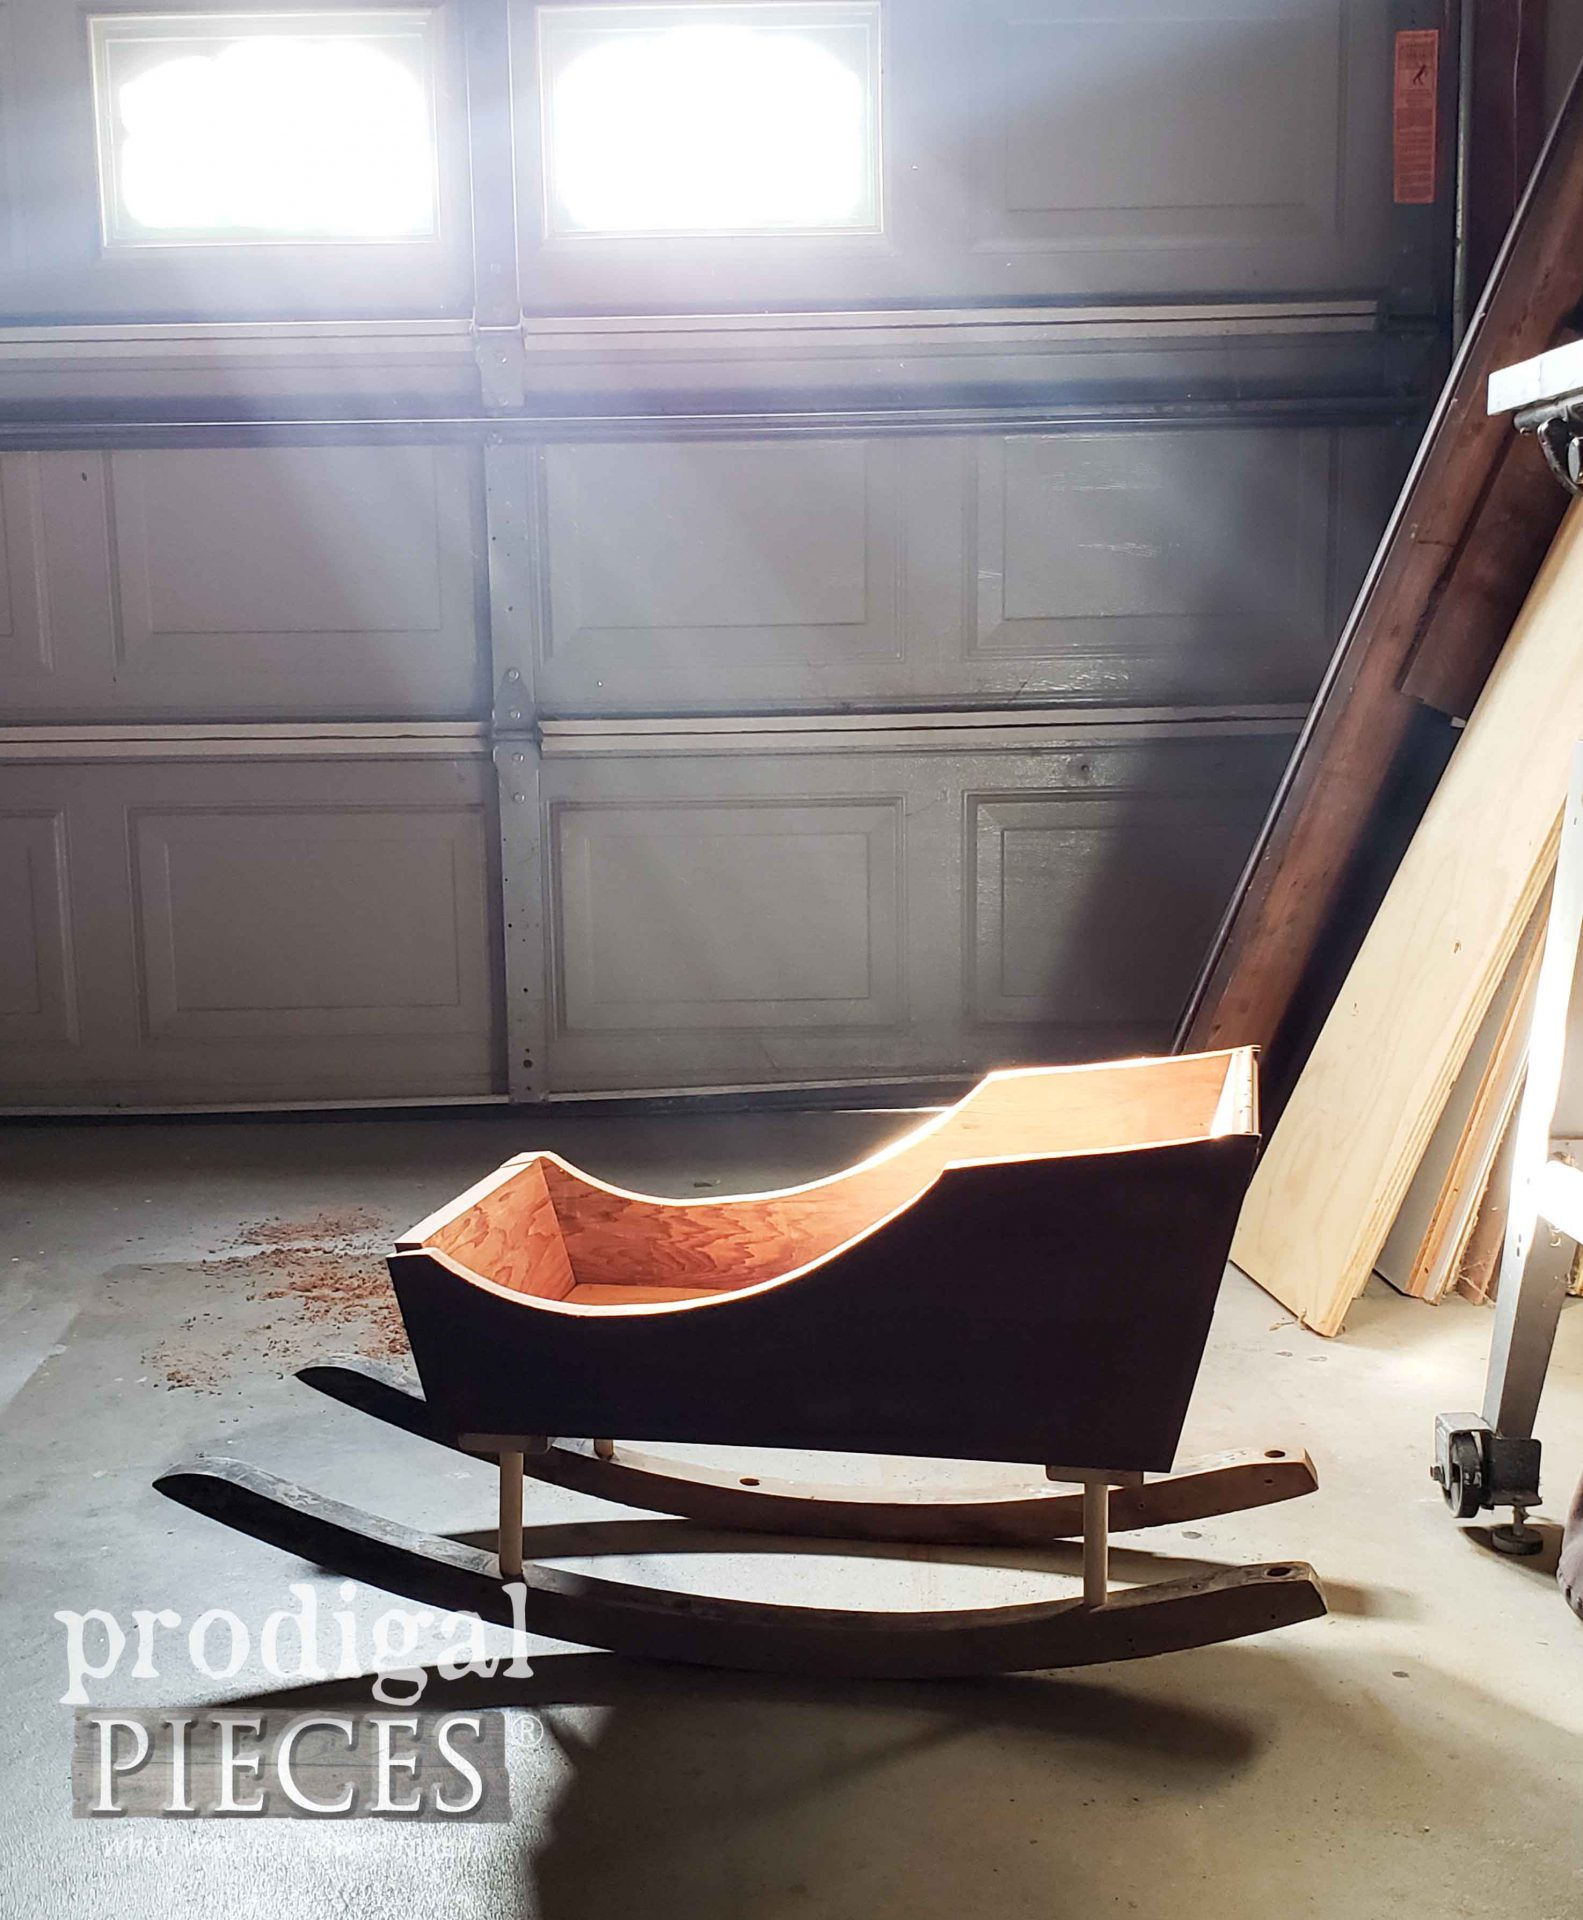 Assembled Upcycled Christmas Sleigh built by Larissa of Prodigal Pieces | prodigalpieces.com #prodigalpieces